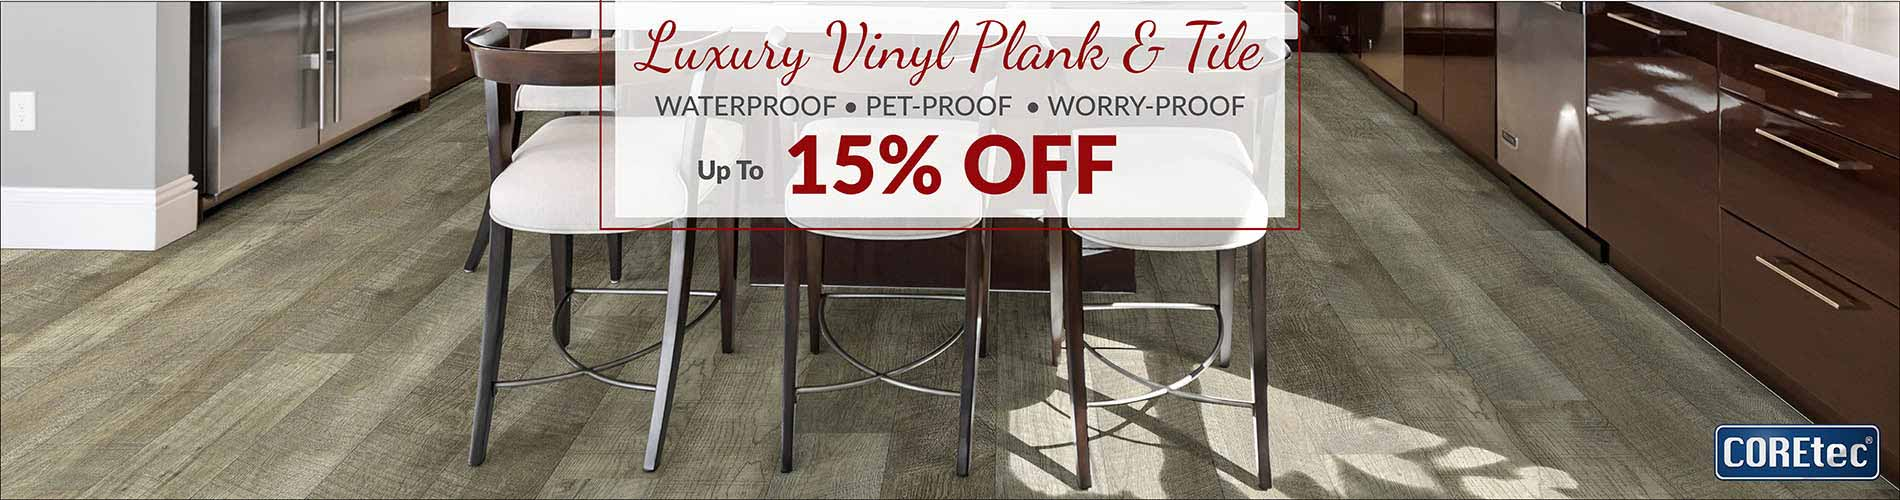 Save up to 15% off Luxury Vinyl Plank & Tile Flooring during our Home for the Holidays Flooring Sale at Floors to Go of Indianapolis, IN